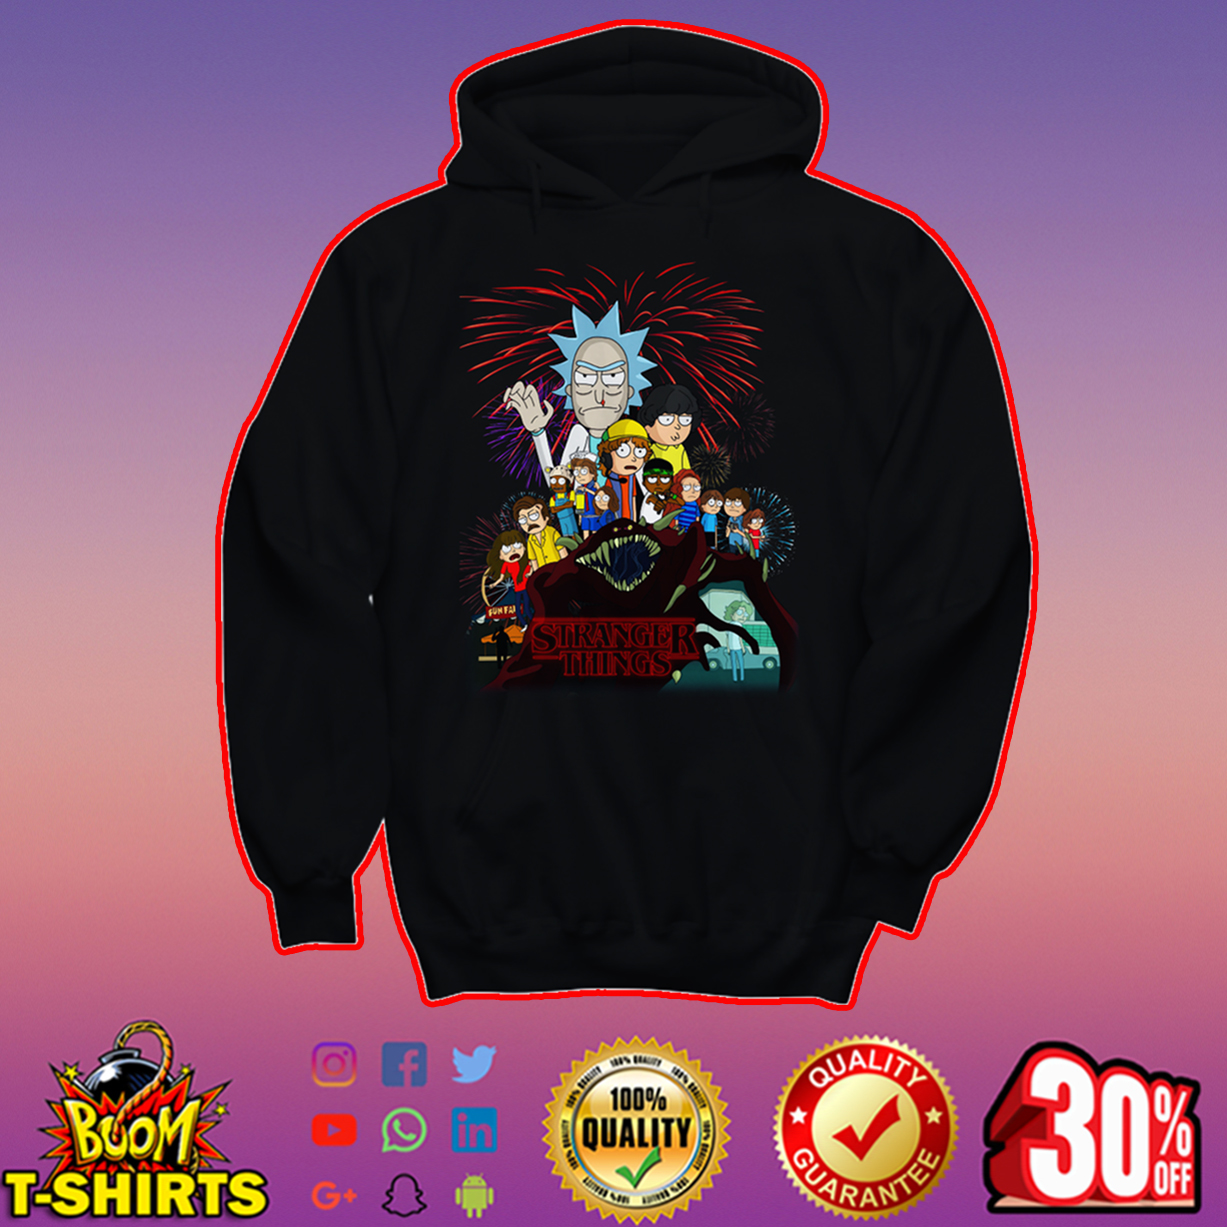 Rick and Morty x Stranger Things hoodie